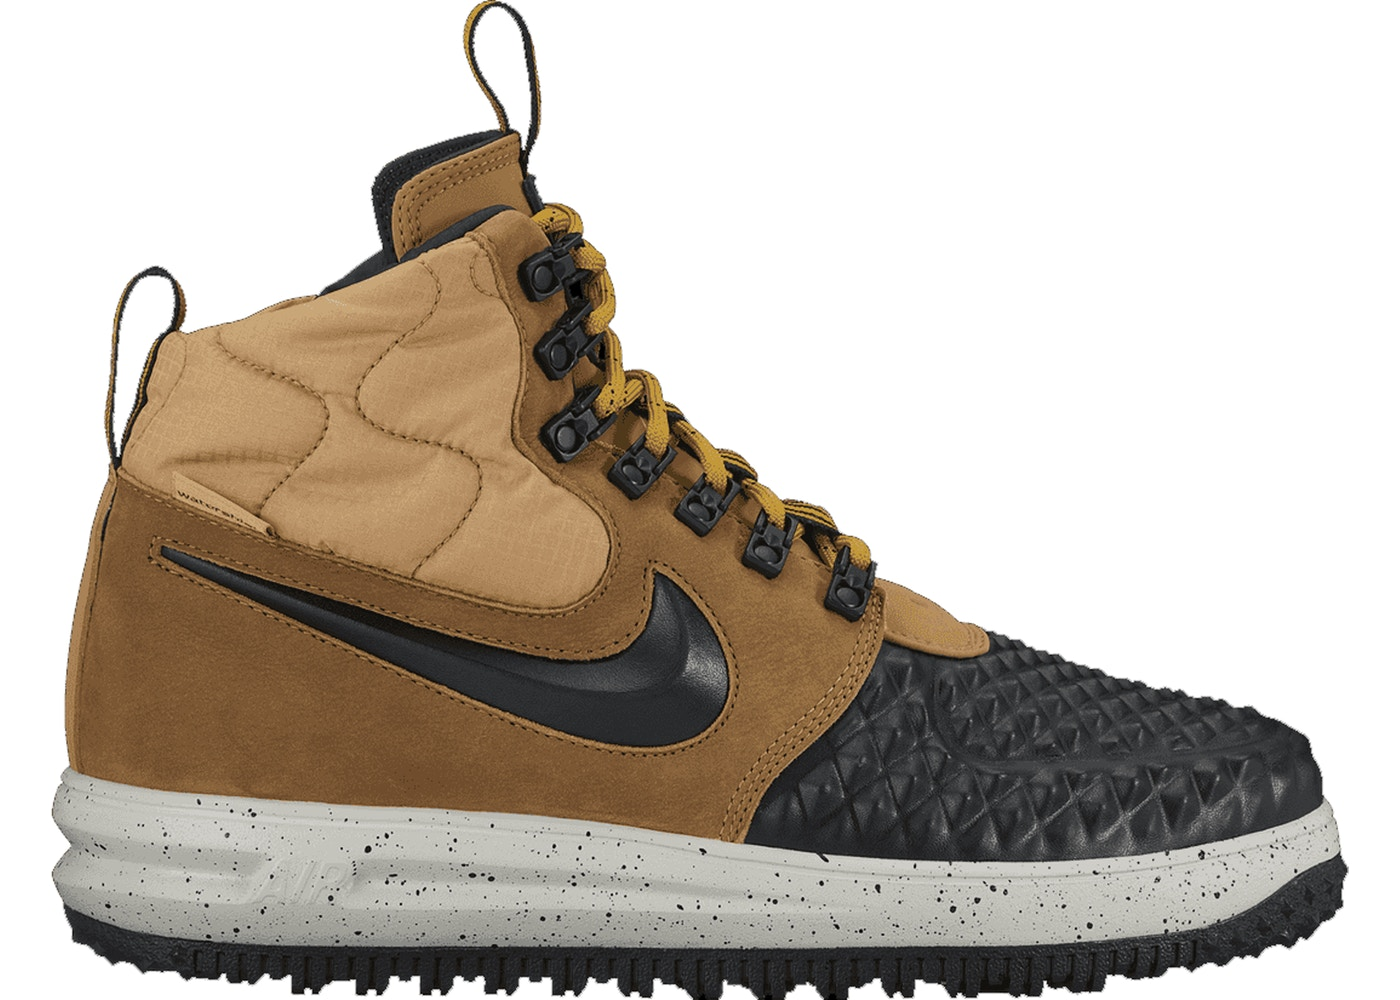 Nike Lunar Force 1 Duckboot Metallic Gold